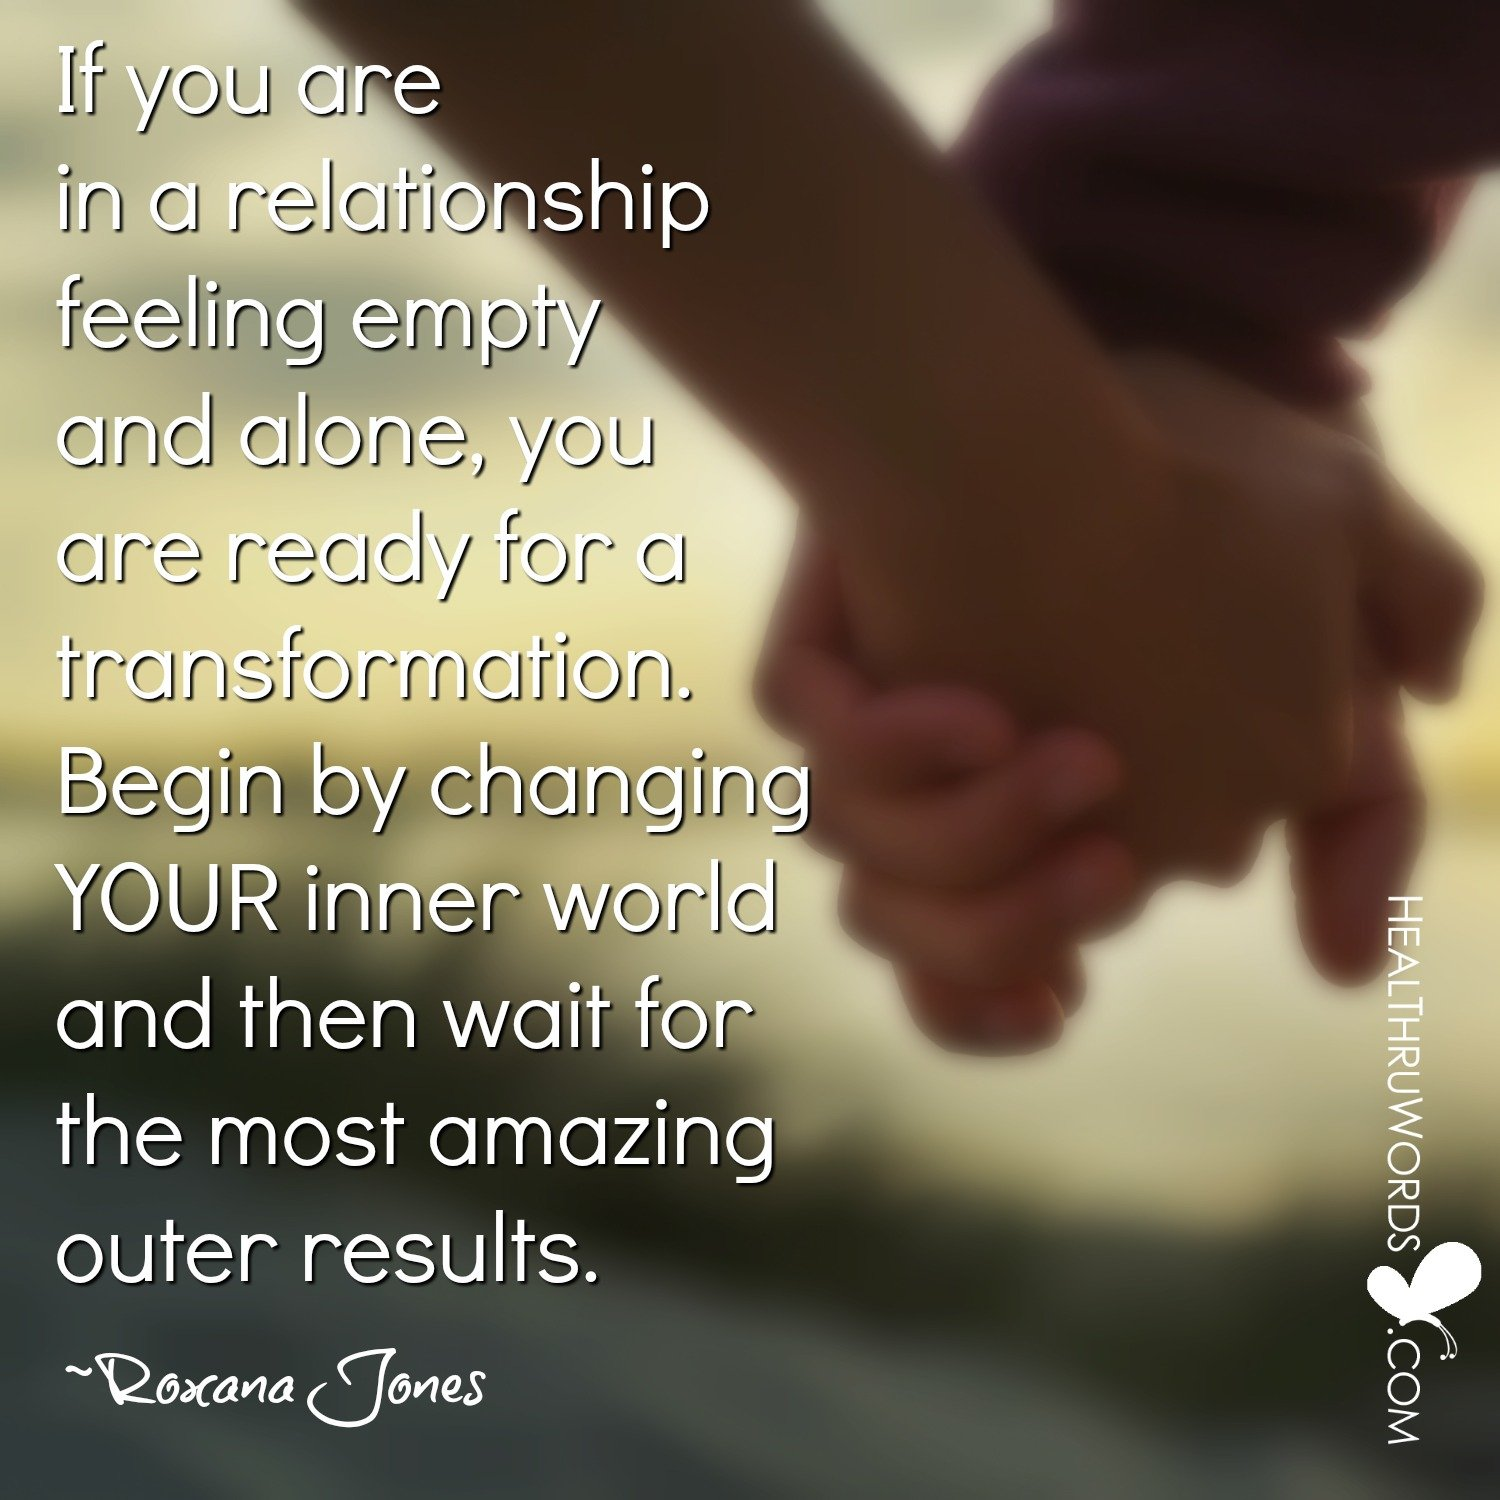 Inspirational Image: Transforming Relationships